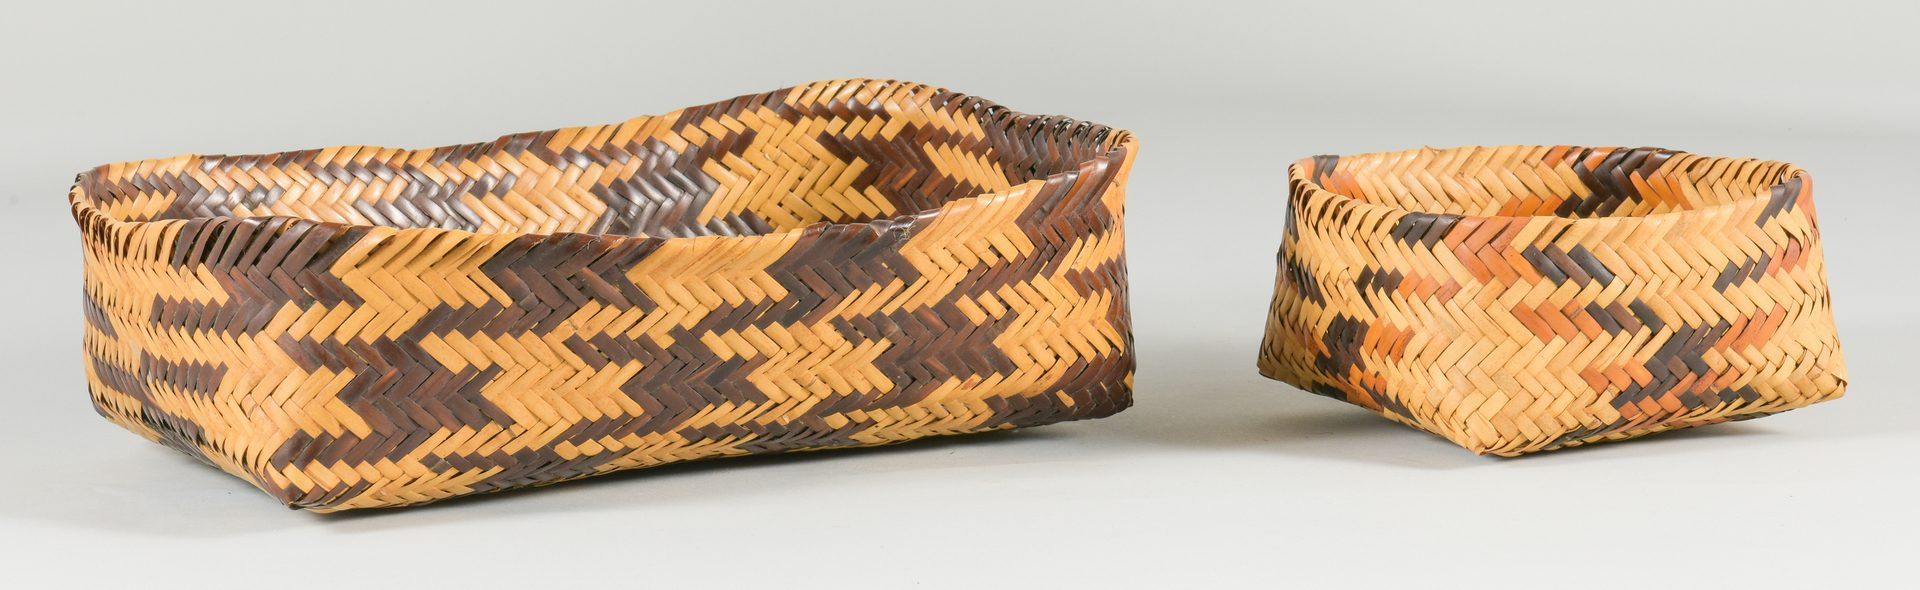 Lot 508: 2 Cherokee Double Weave Rivercane Baskets